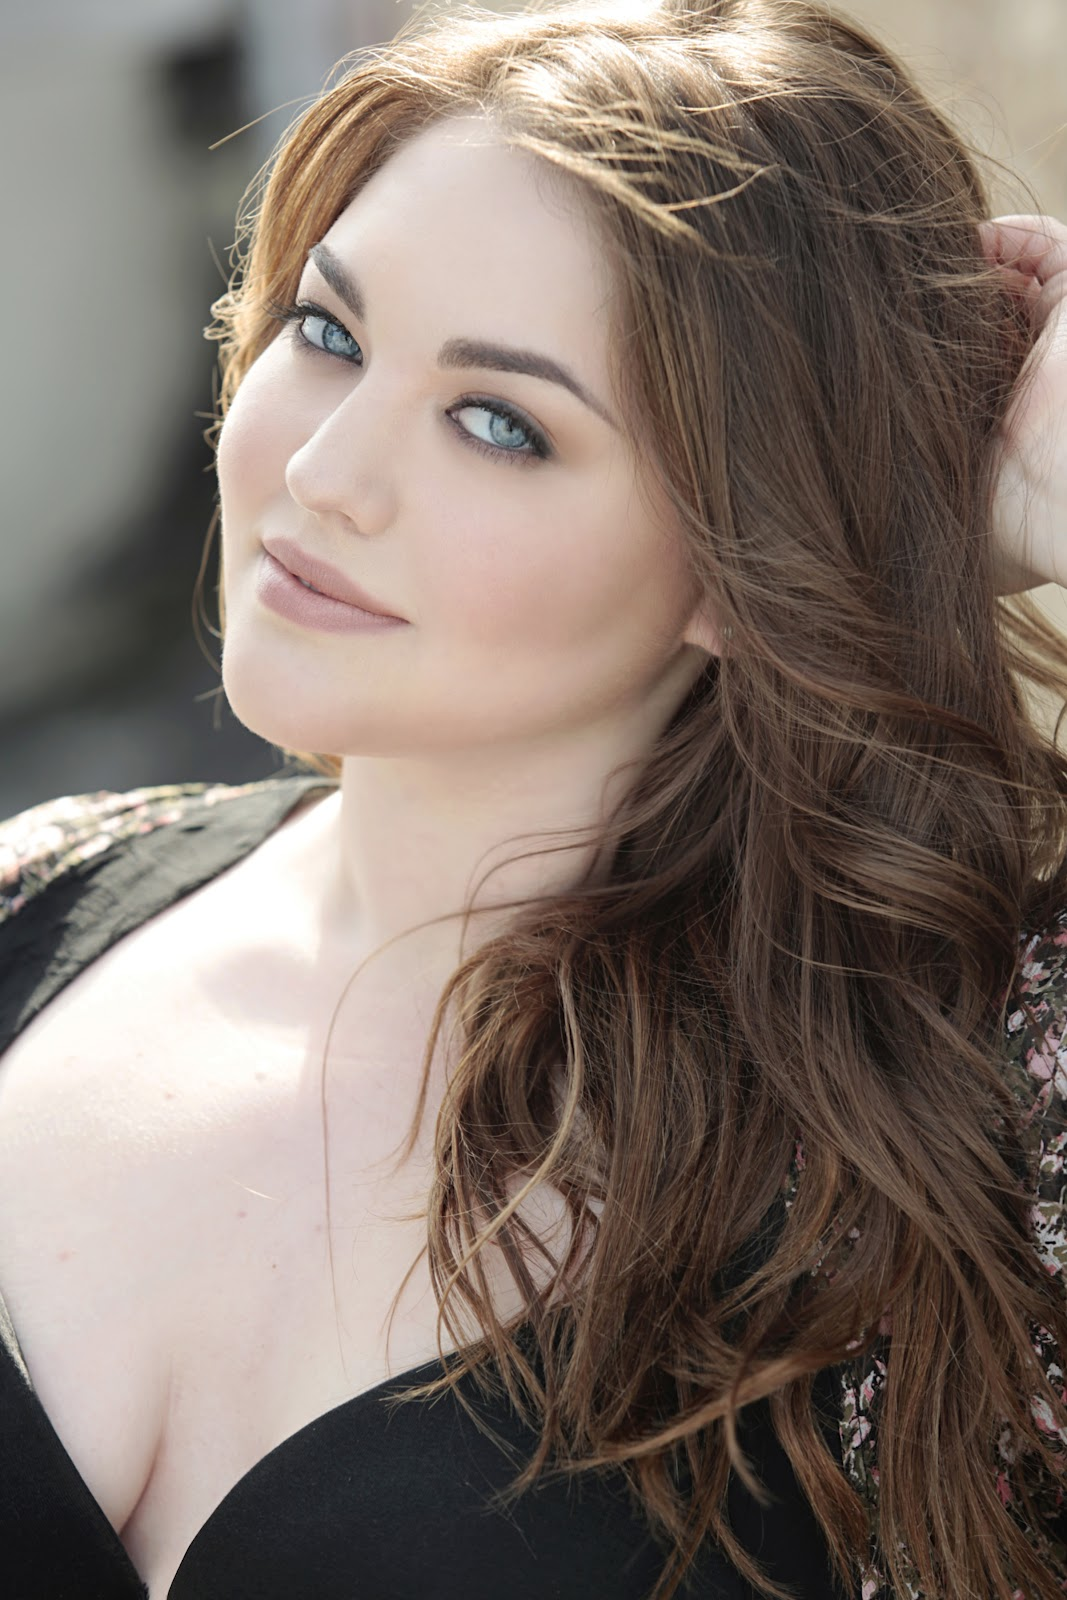 plus size model Brunette